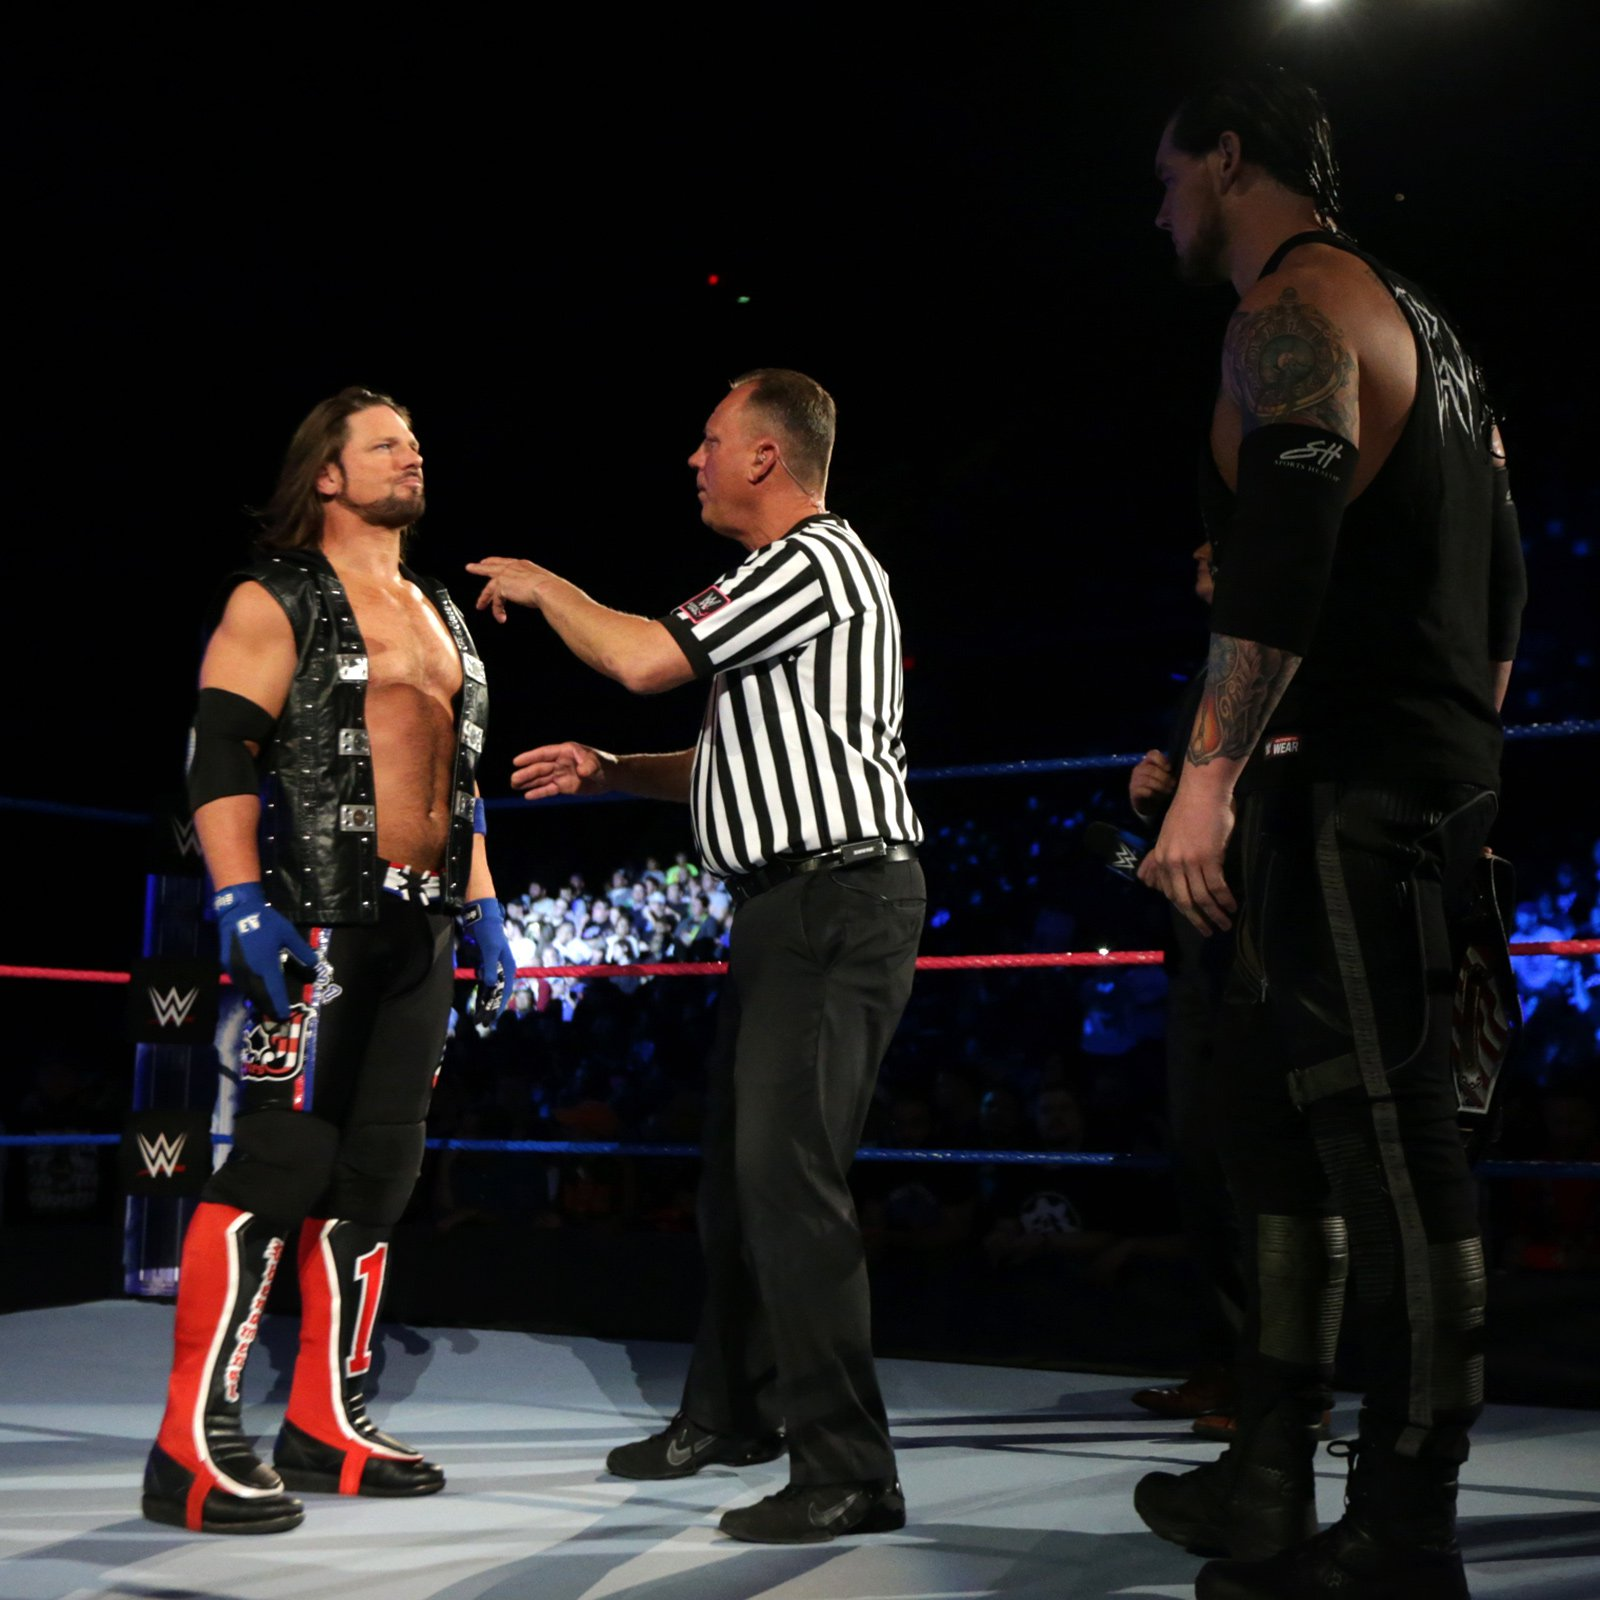 United States Champion Baron Corbin and AJ Styles prepare to battle for the star-spangled title.